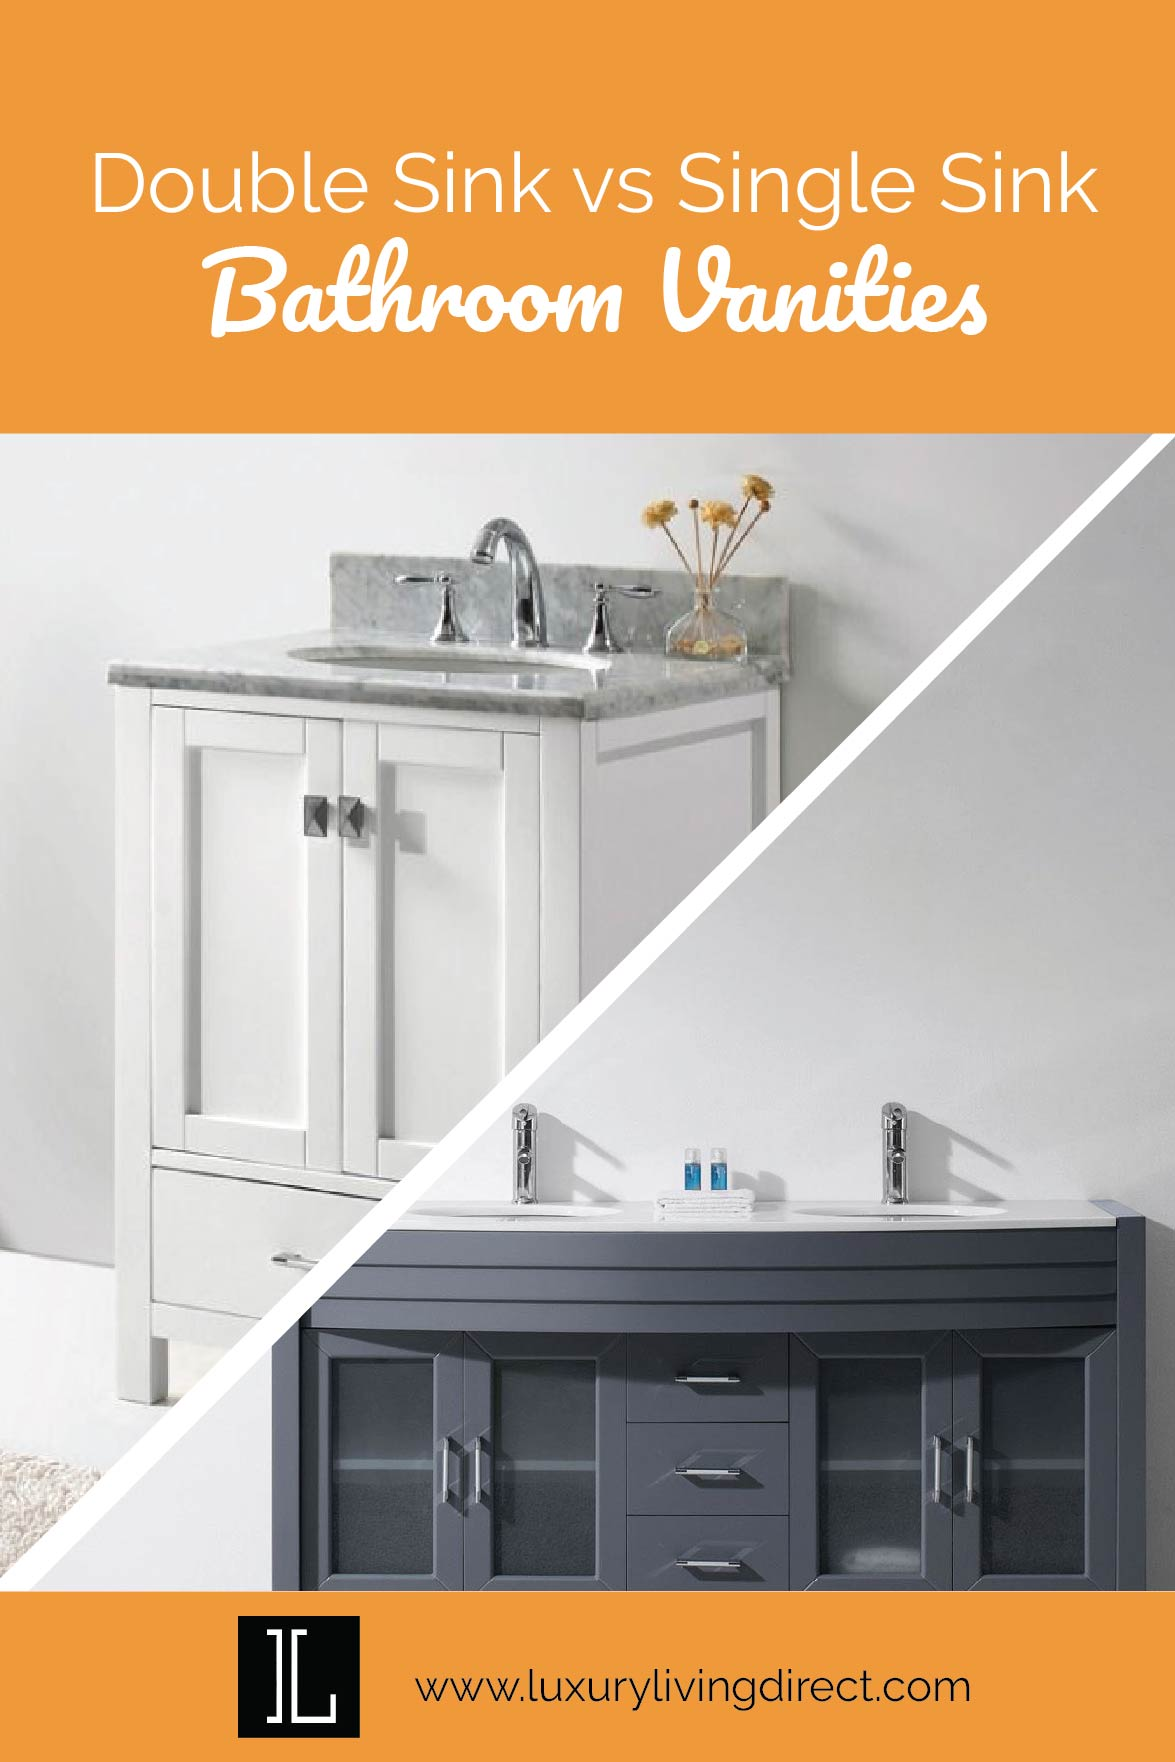 So Is It Cheaper To Get A Single Sink Vanity Or Not?